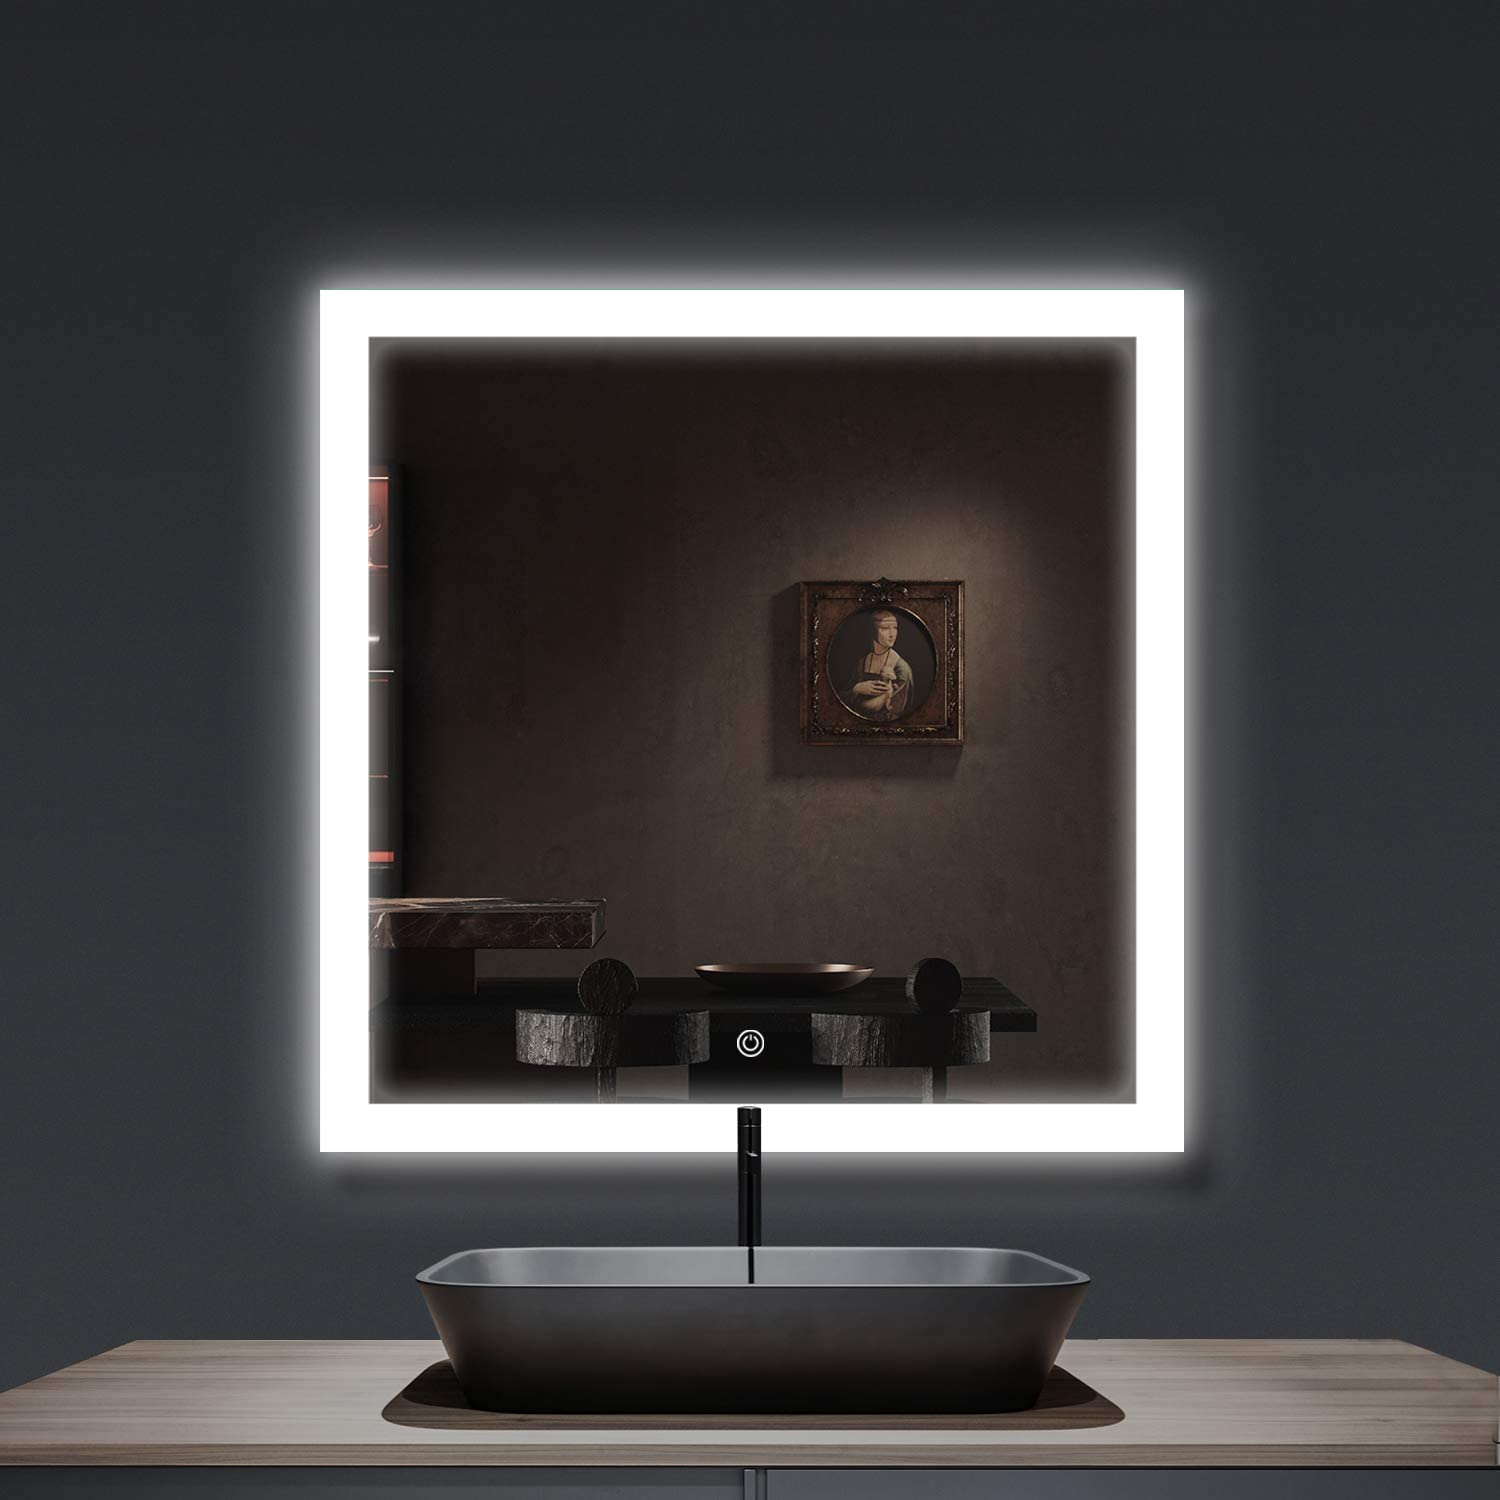 Amazon Com Smartrun Wall Mounted Led Lighted Backlit Mirror 36 X36 Square Bathroom Vanity Mirrors Round Control Button Dimmable Light Pannacle3636 Home Kitchen